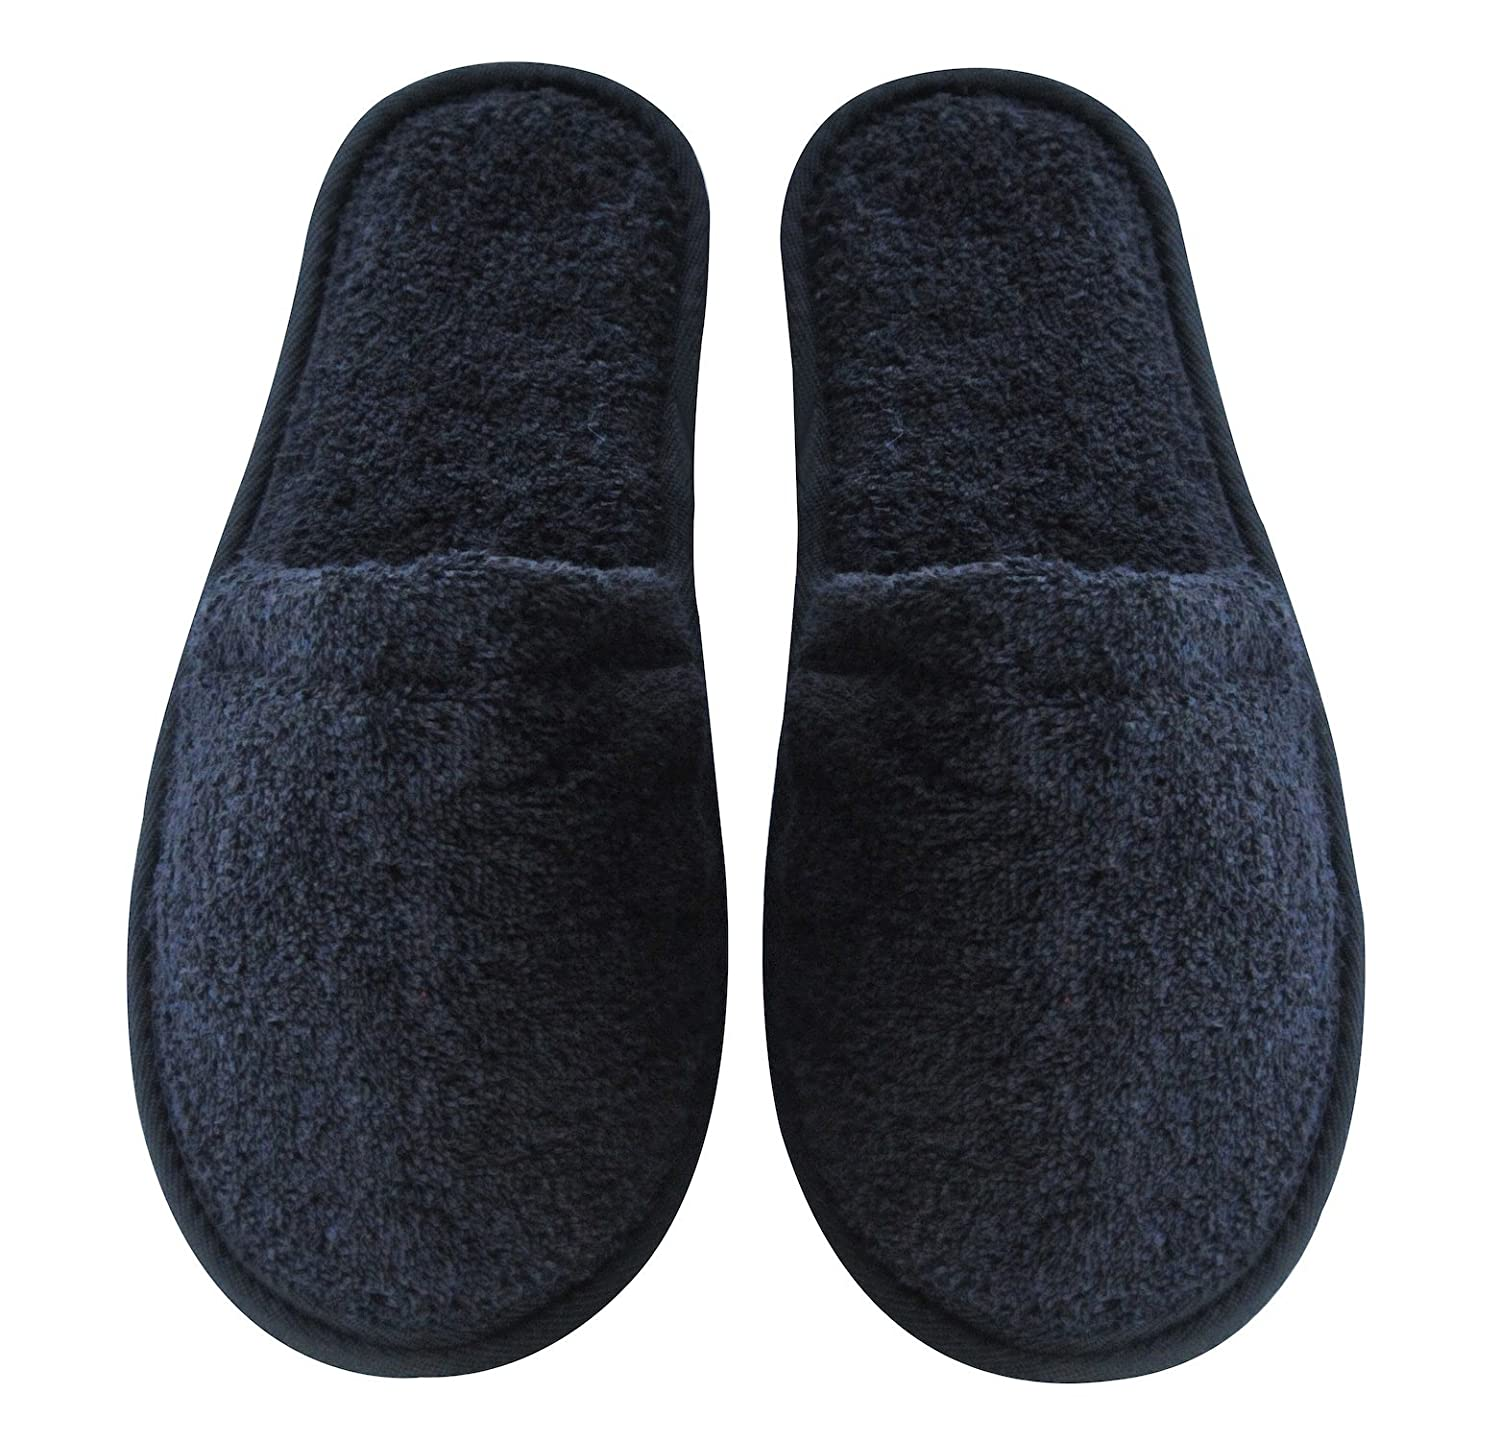 6a7055de4e Amazon.com  Arus Men s Turkish Terry Cotton Cloth Spa Slippers